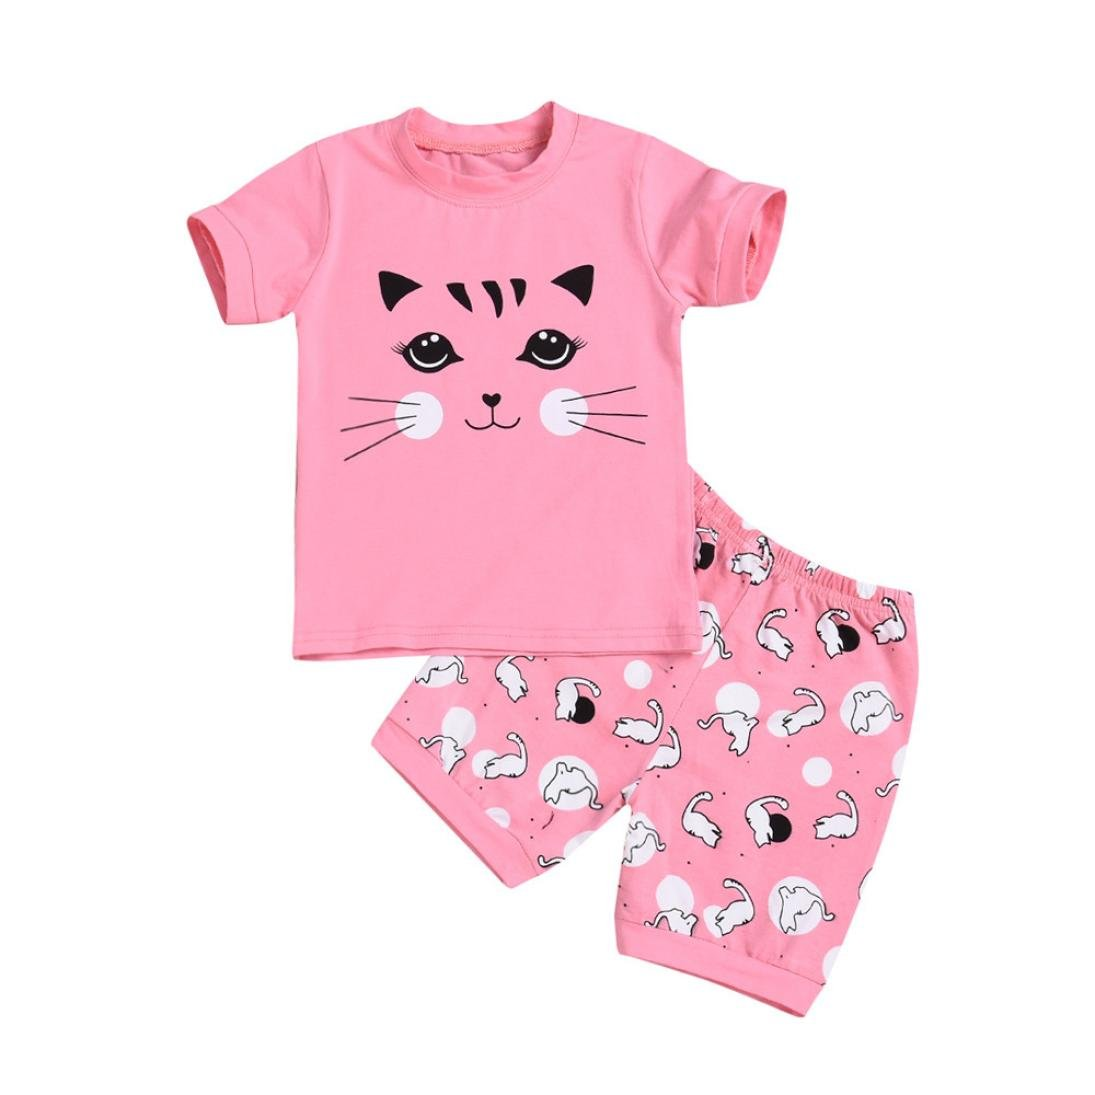 f7fd929eee80 Amazon.com  vermers Clearance Toddler Kids Clothes Set - Baby Girl Pajamas  Cartoon Cat Print Tops Shorts Outfits Set  Clothing